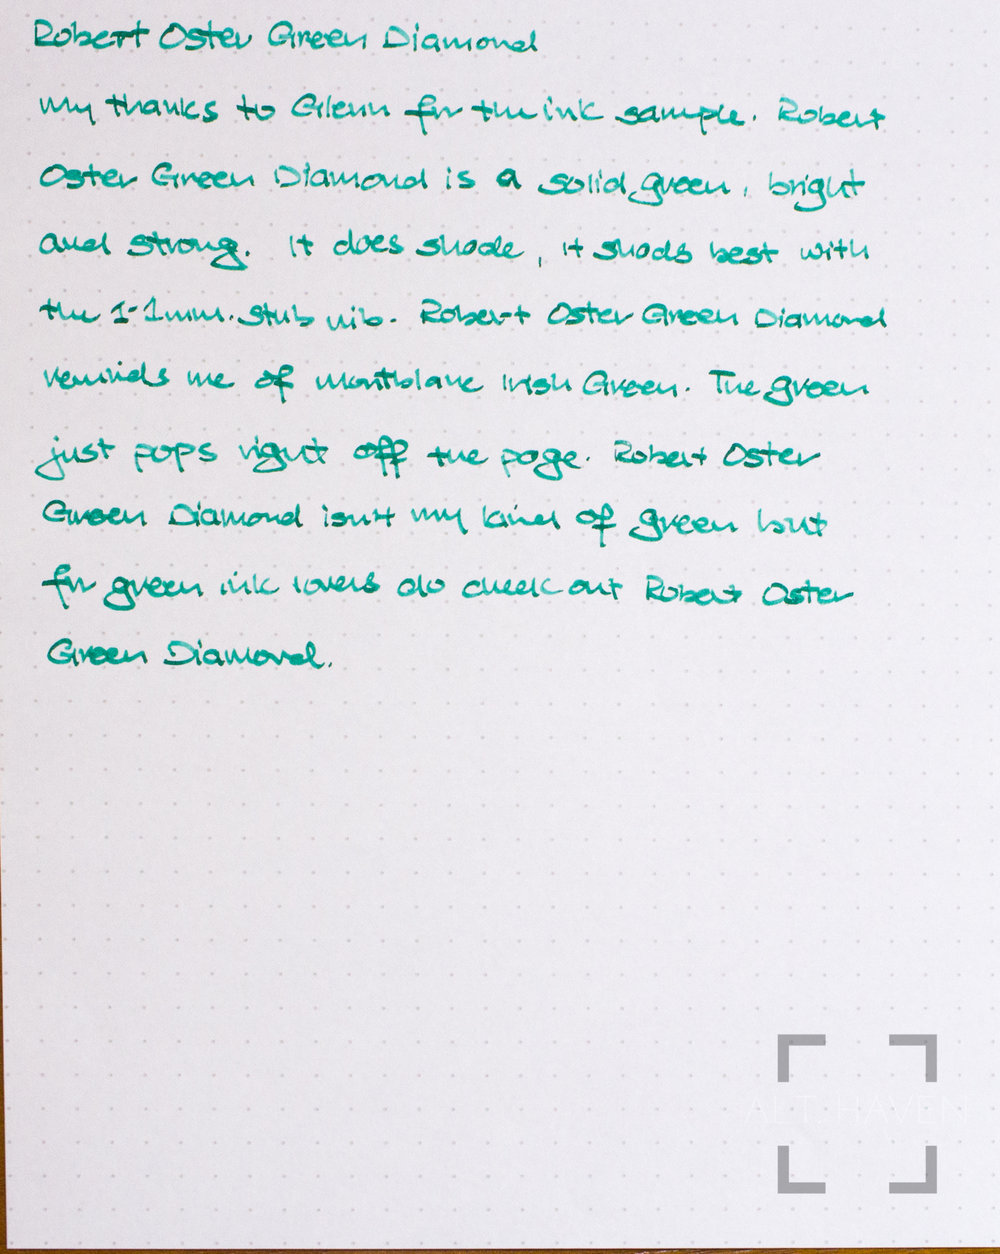 Robert Oster Green Diamond-2.jpg